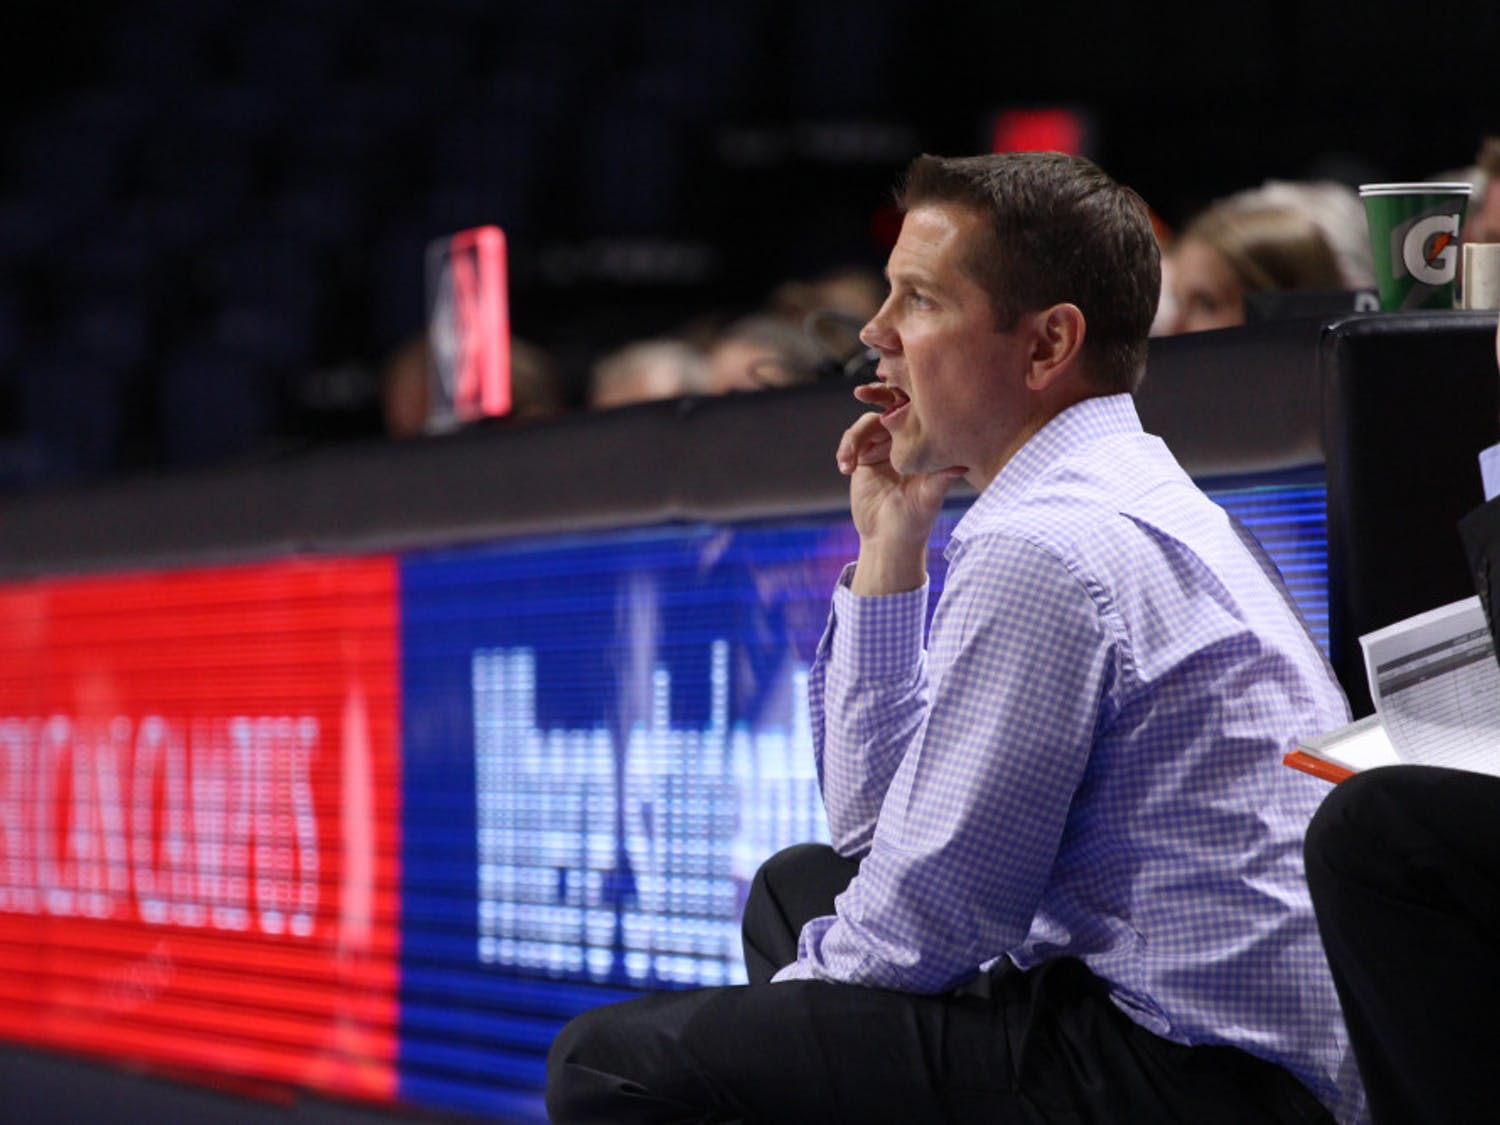 """After losing his eighth conference game of the season, UF coach Cameron Newbauer remained positive about his team's effort.""""I could not be more proud of this group and their fight tonight on the road against a top-15 team,"""" he said."""